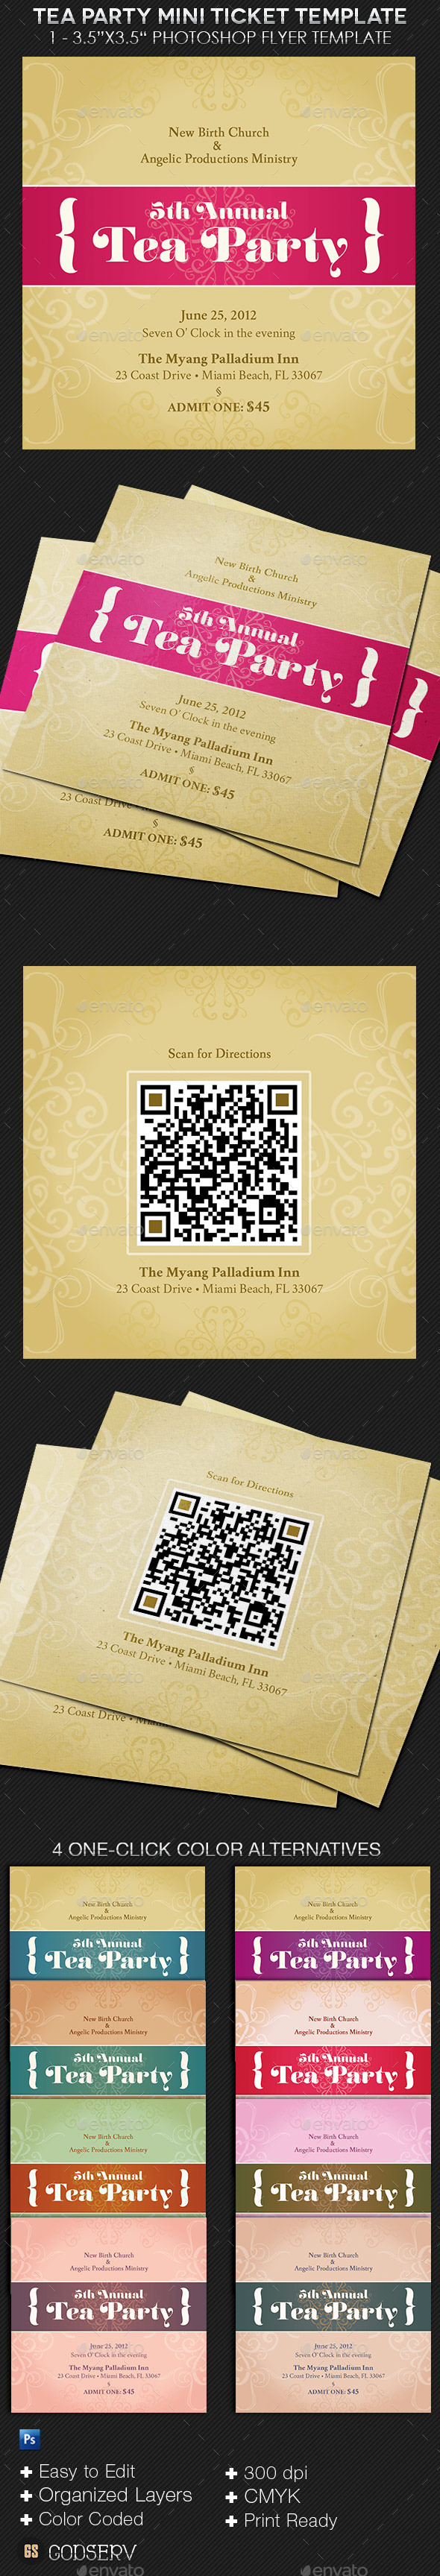 Tea Party Mini Ticket Template - Miscellaneous Print Templates